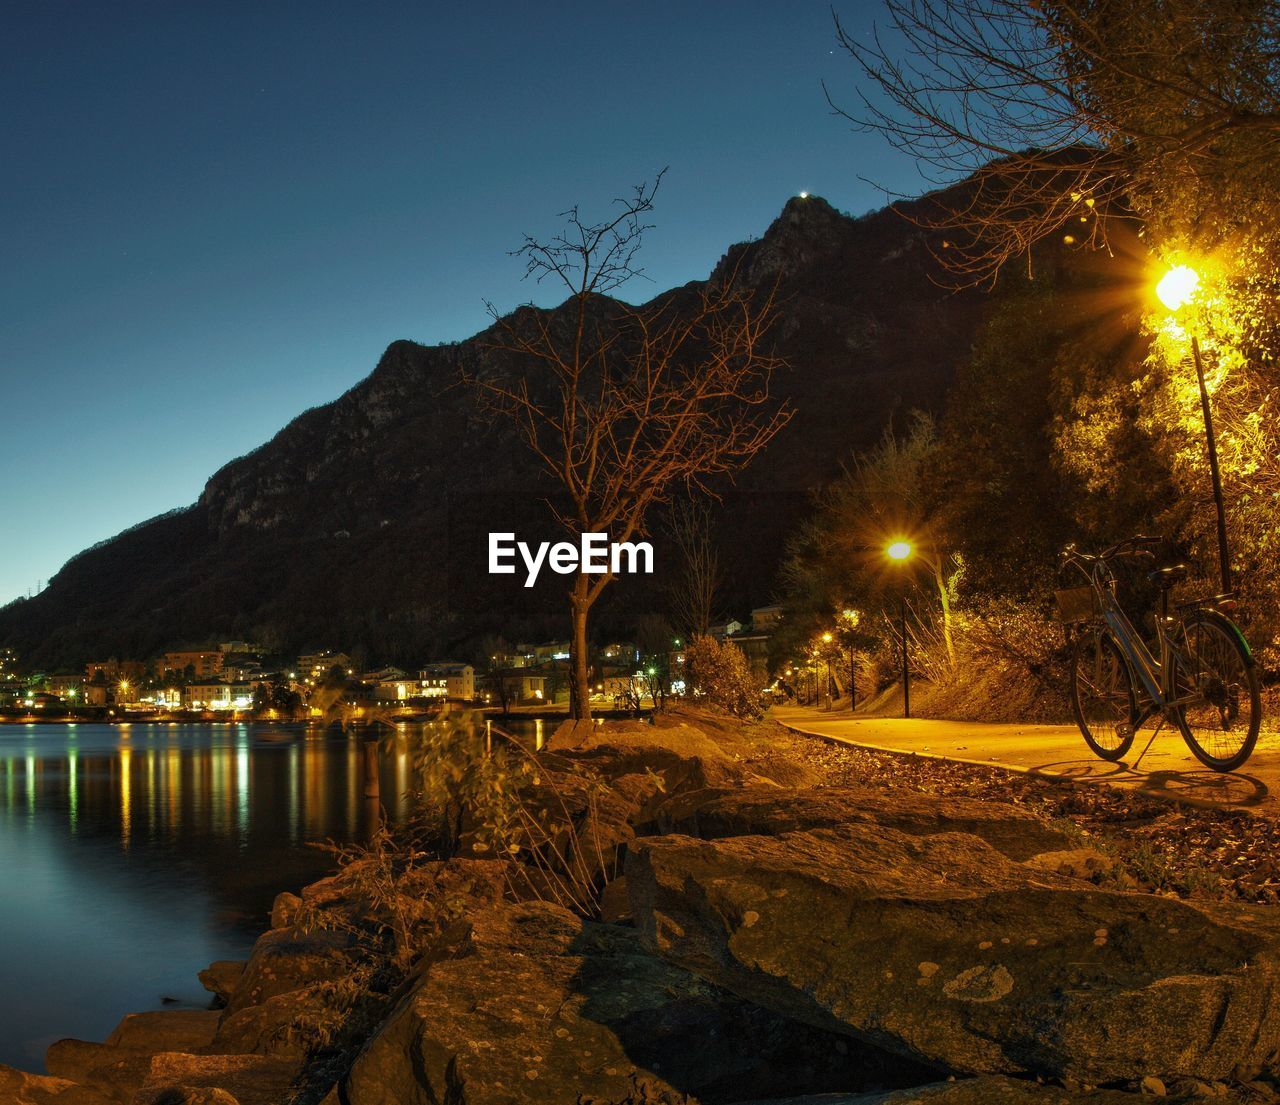 illuminated, water, sky, tree, night, nature, no people, plant, lighting equipment, architecture, street light, street, reflection, built structure, mountain, building exterior, river, outdoors